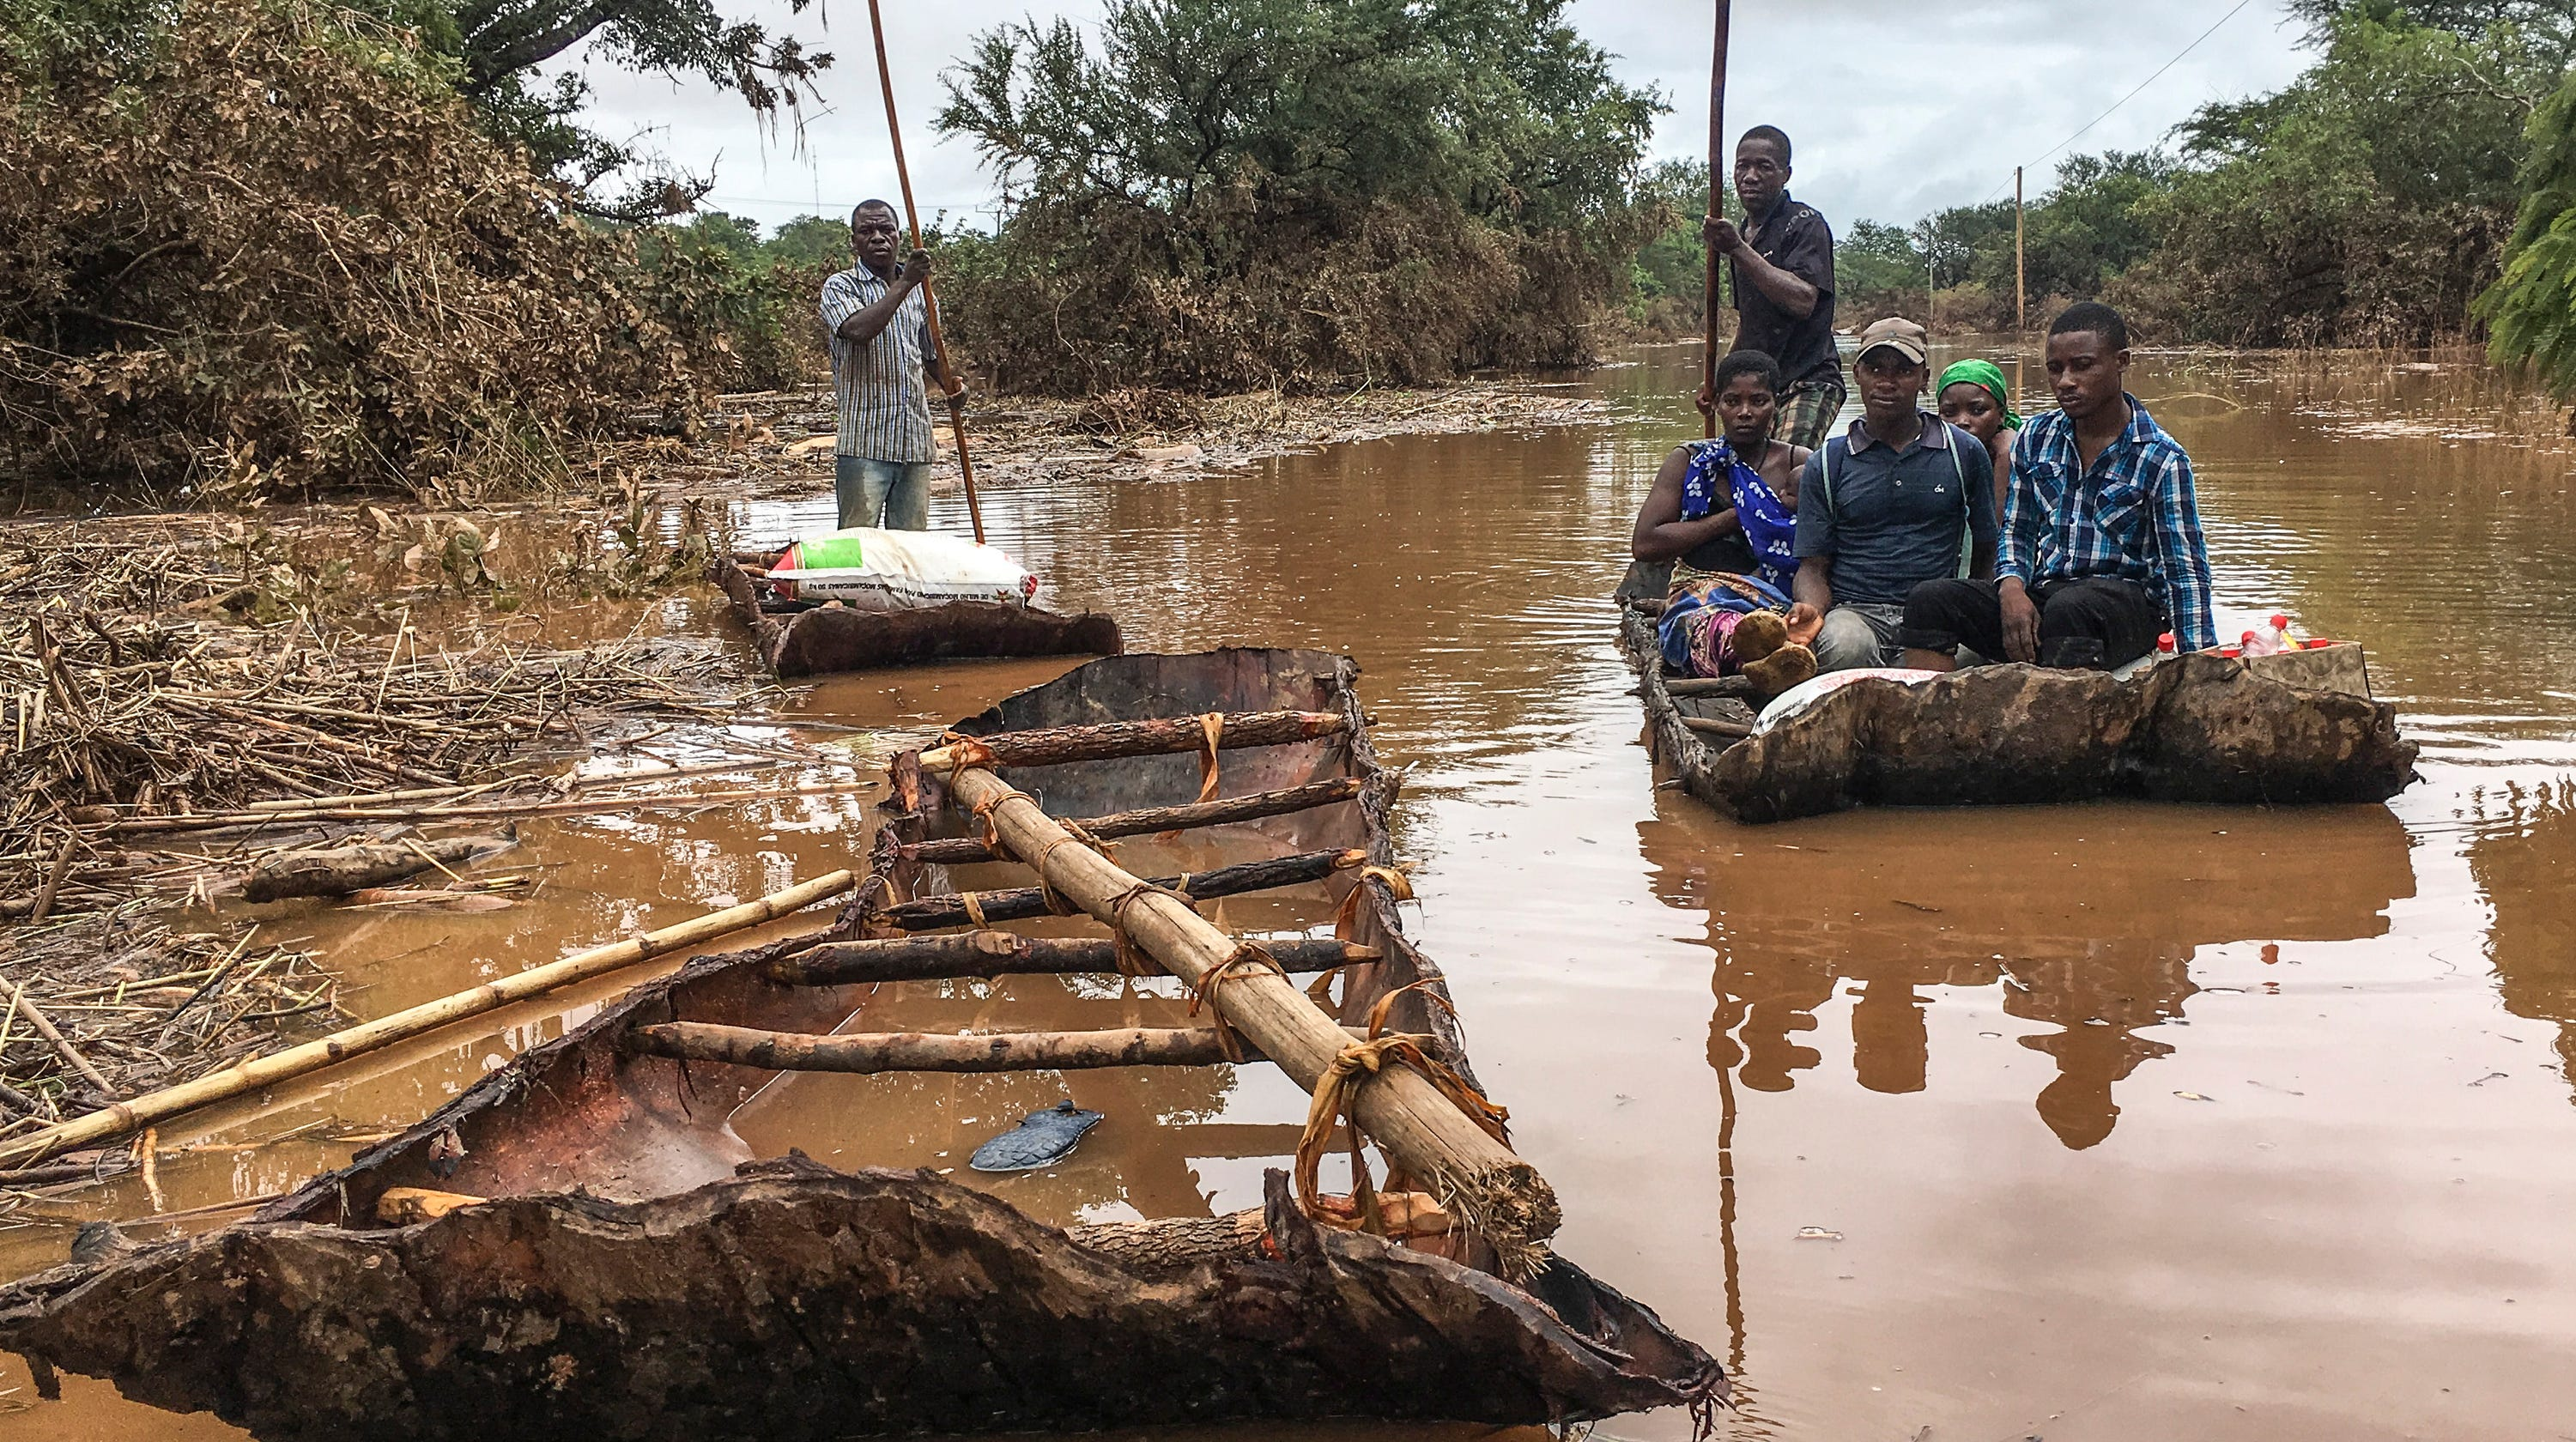 Death toll from Cyclone Idai surpasses 500 in southern Africa